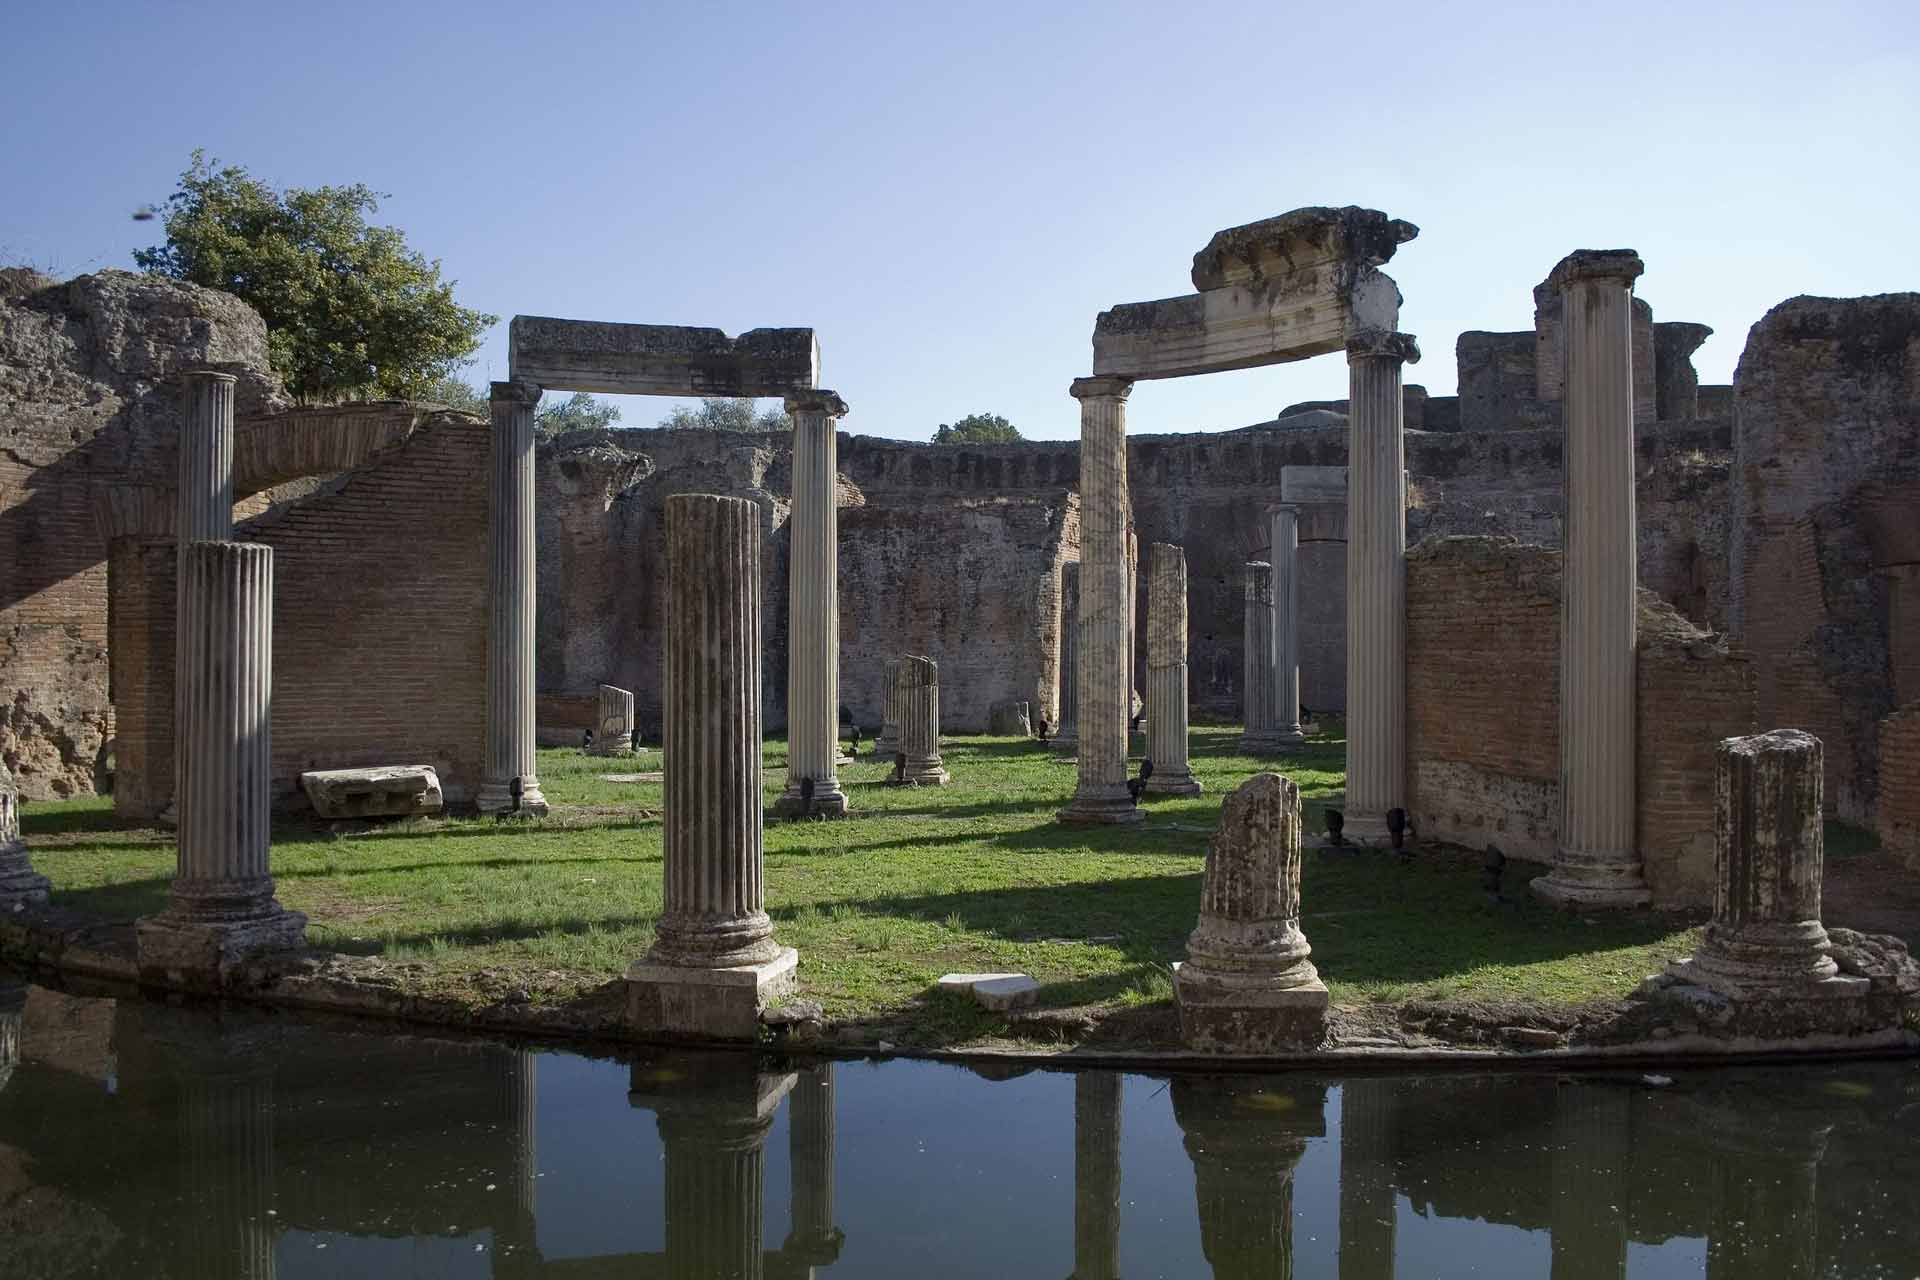 a detail of the so-called Maritime Theater that we will see during our trip to Hadrian's Villa near Tivoli